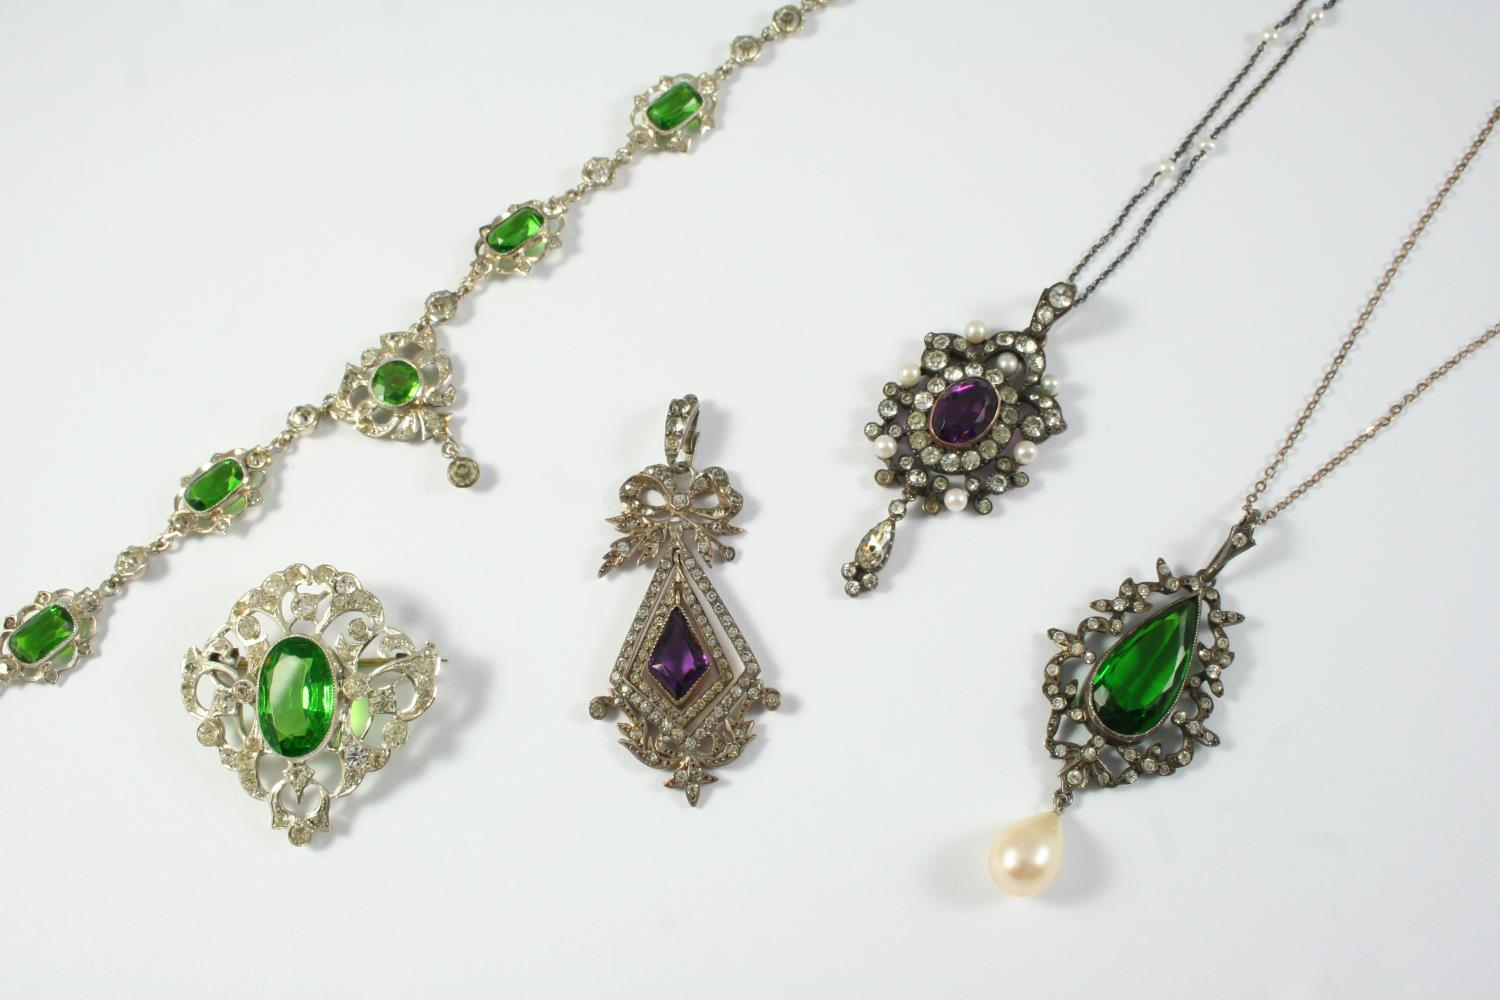 ASSORTED PASTE JEWELLERY including a cased purple and white paste pendant, a green and white paste